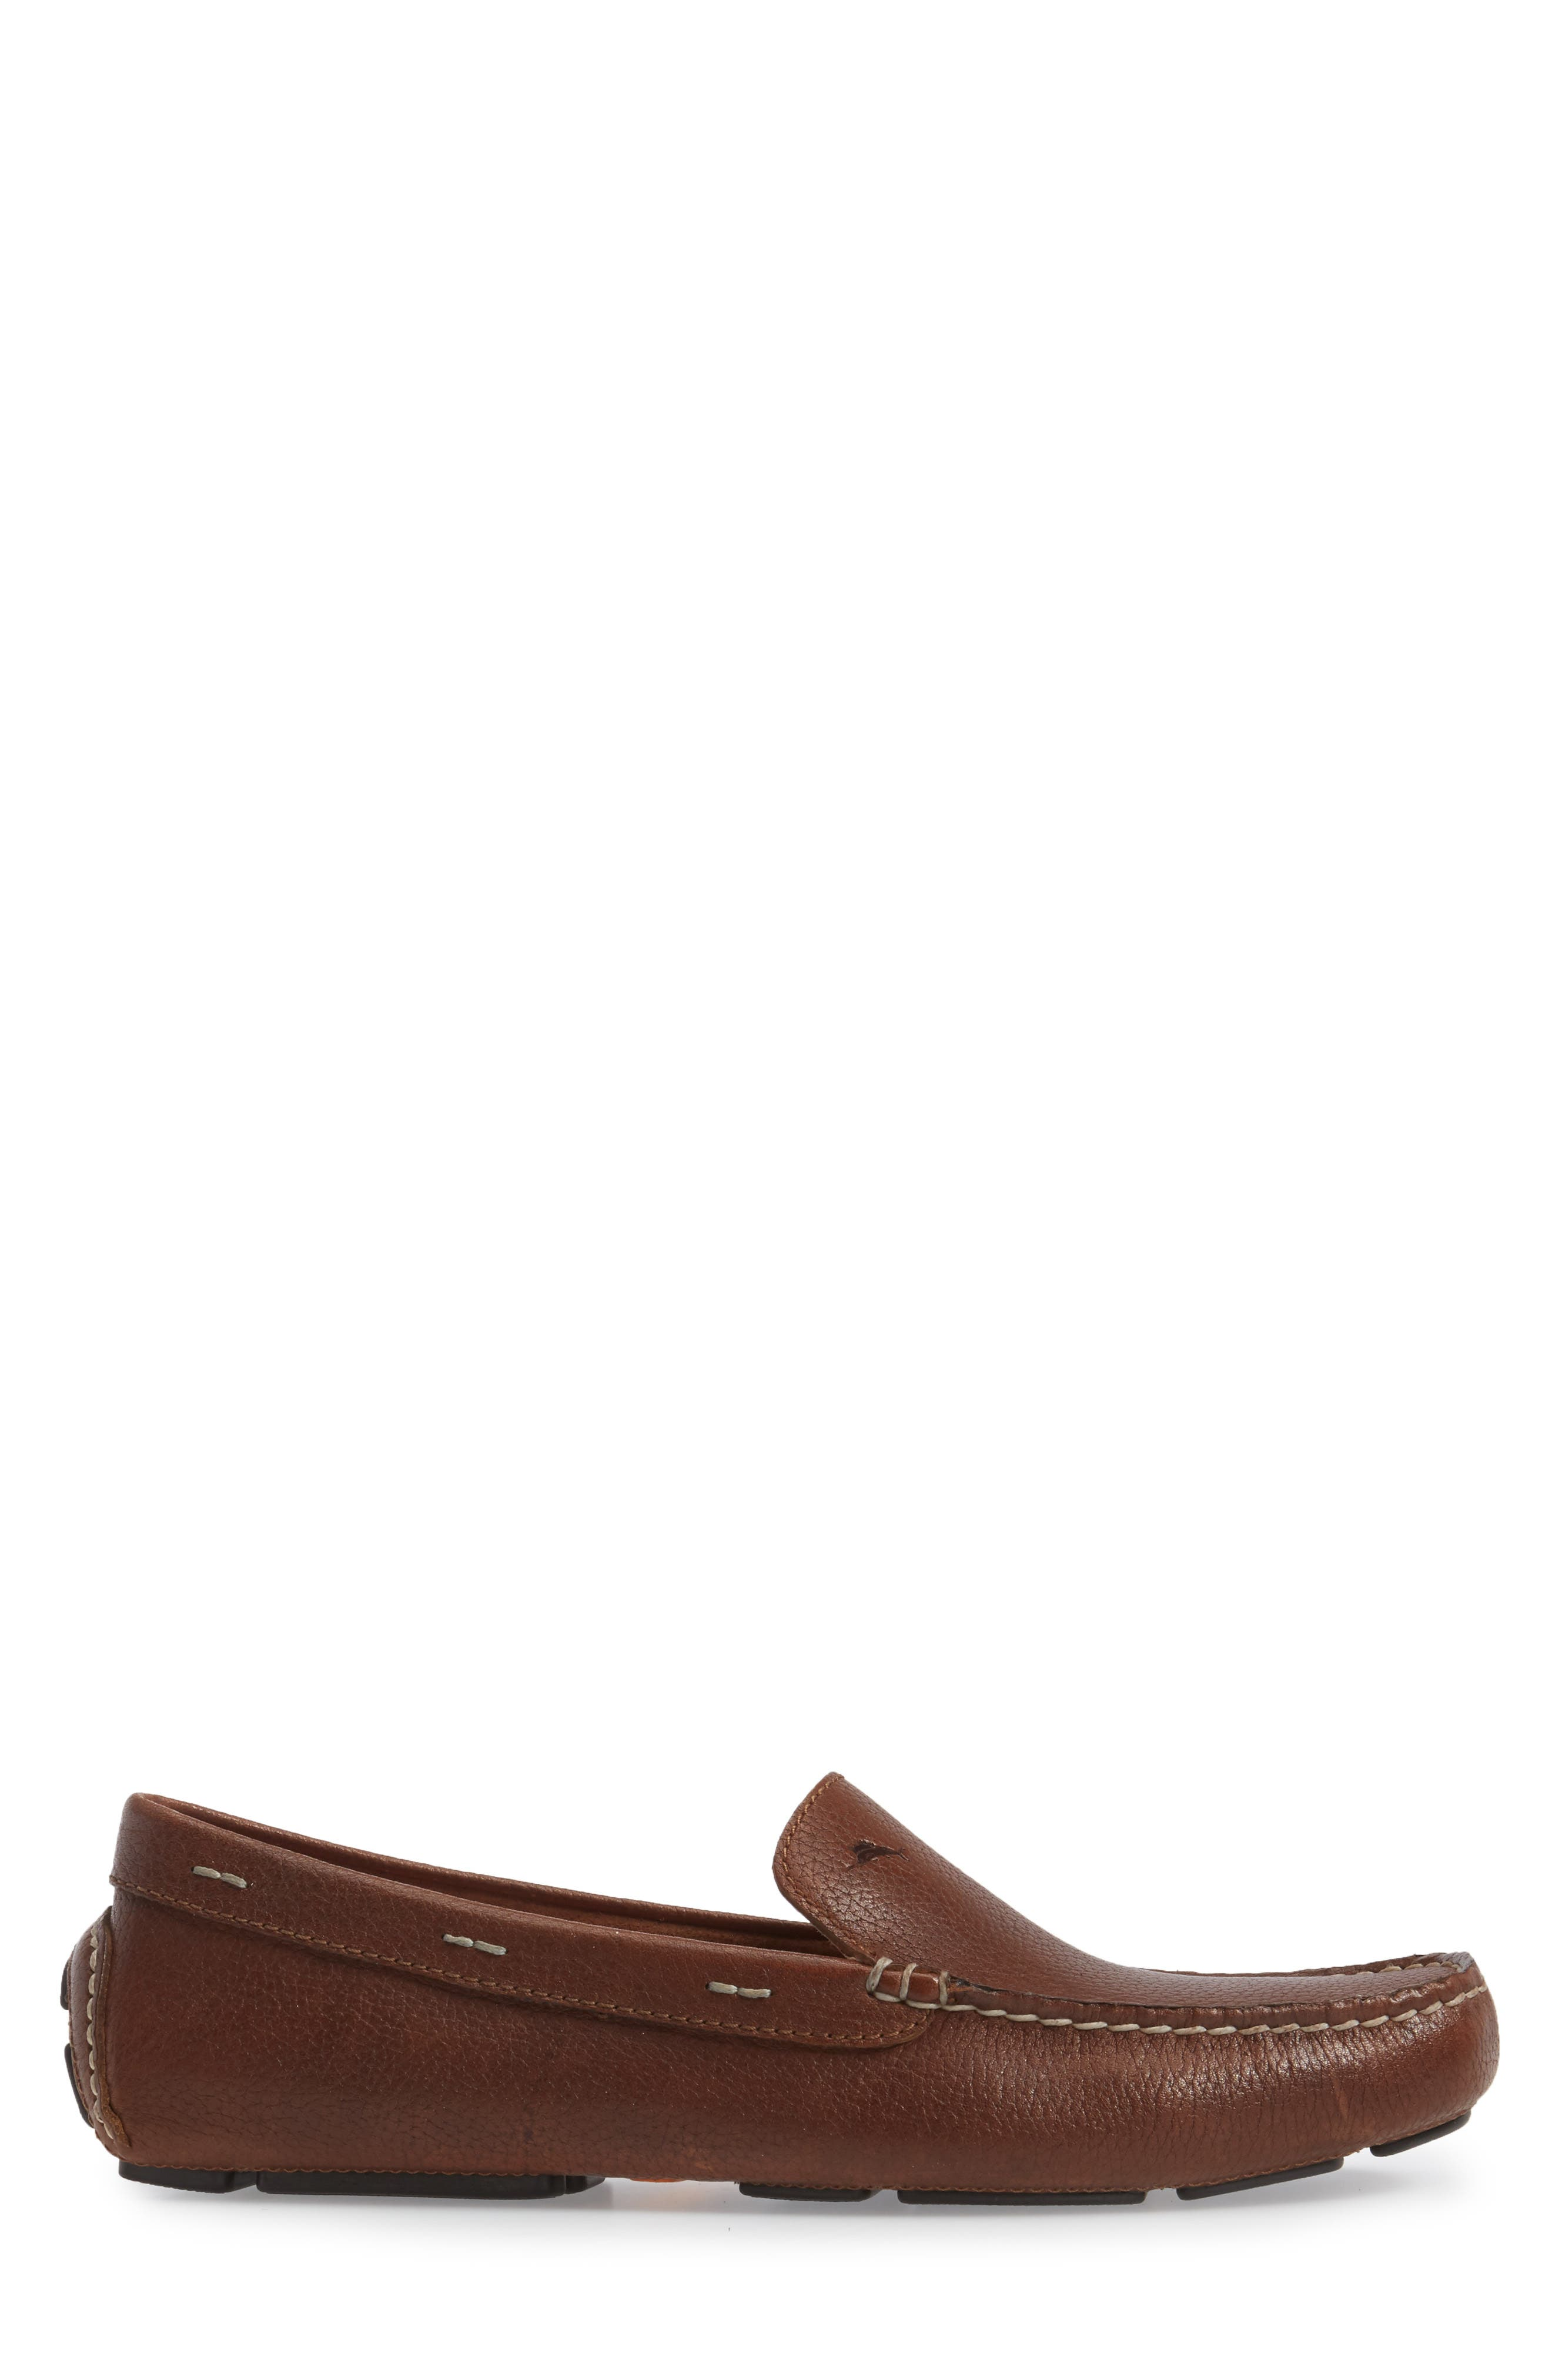 Pagota Driving Loafer,                             Alternate thumbnail 3, color,                             DARK BROWN LEATHER